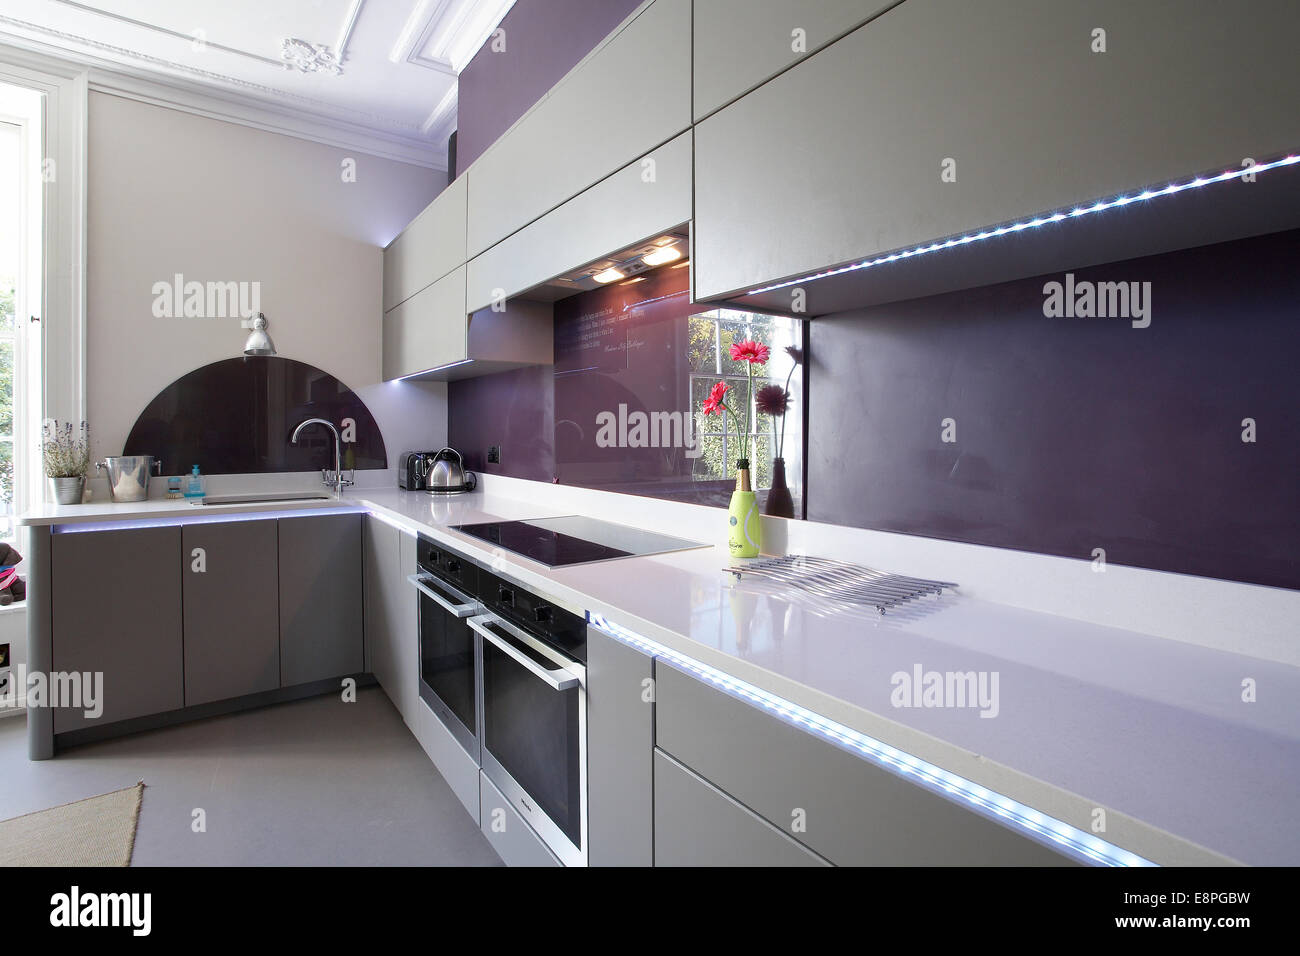 A modern kitchen inside a home in the UK. - Stock Image